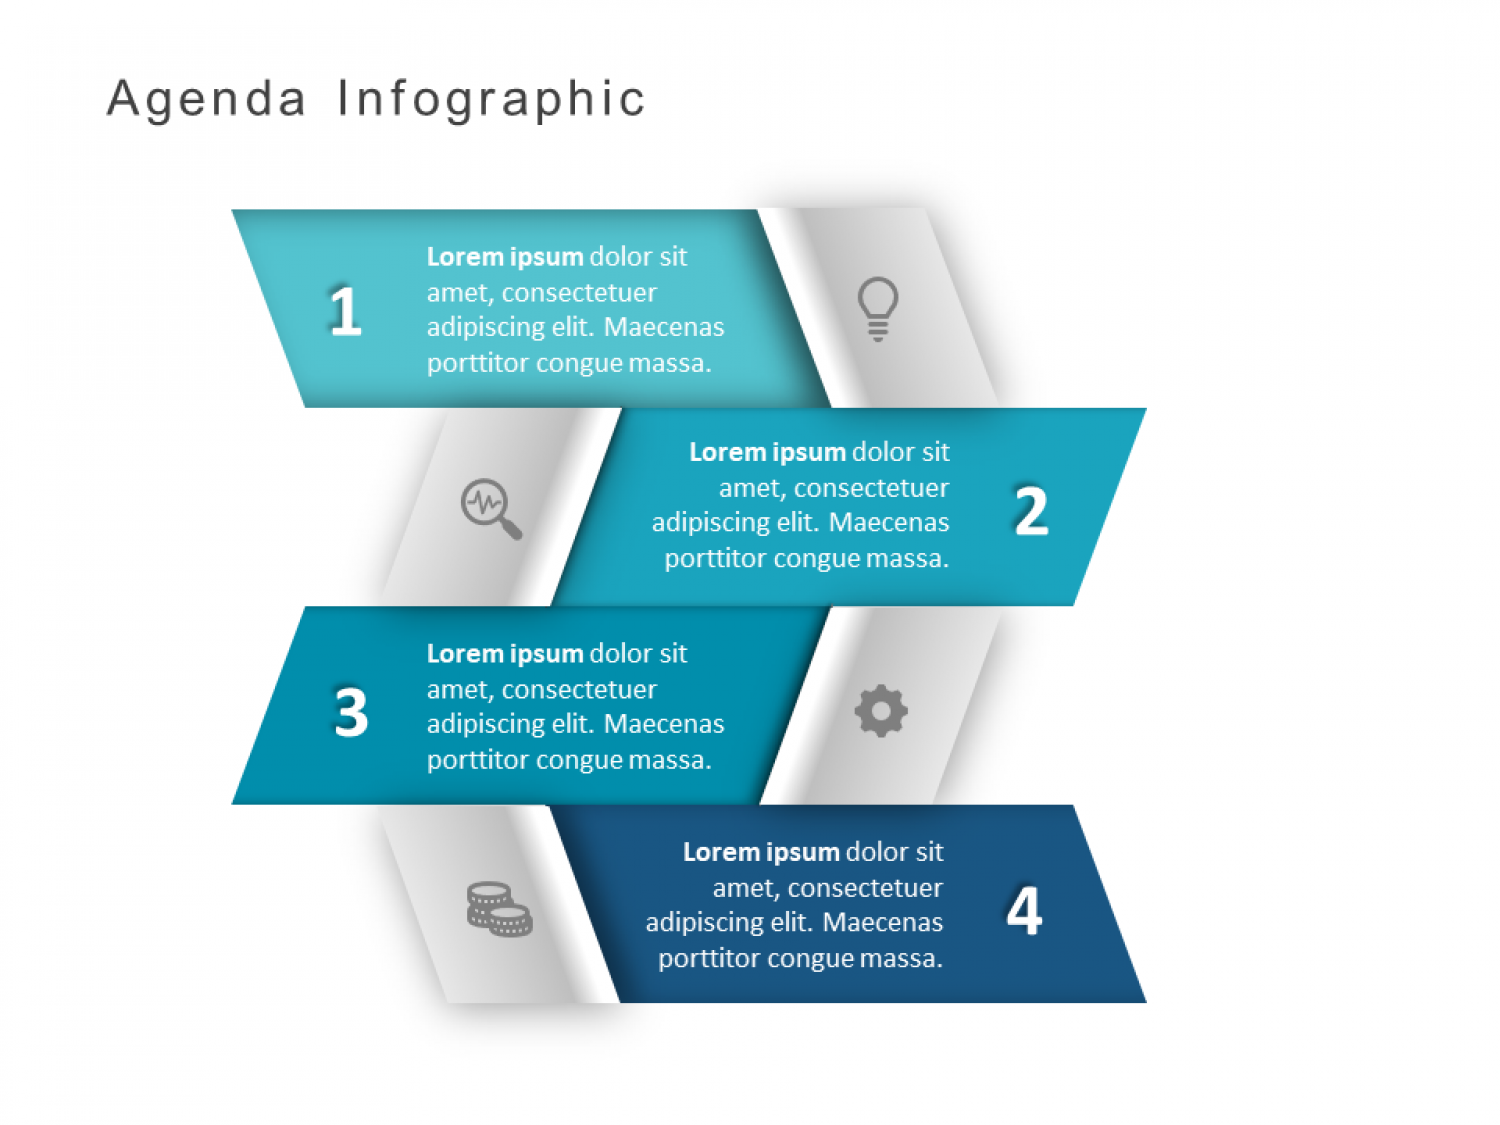 3D Agenda PowerPoint Template Infographic